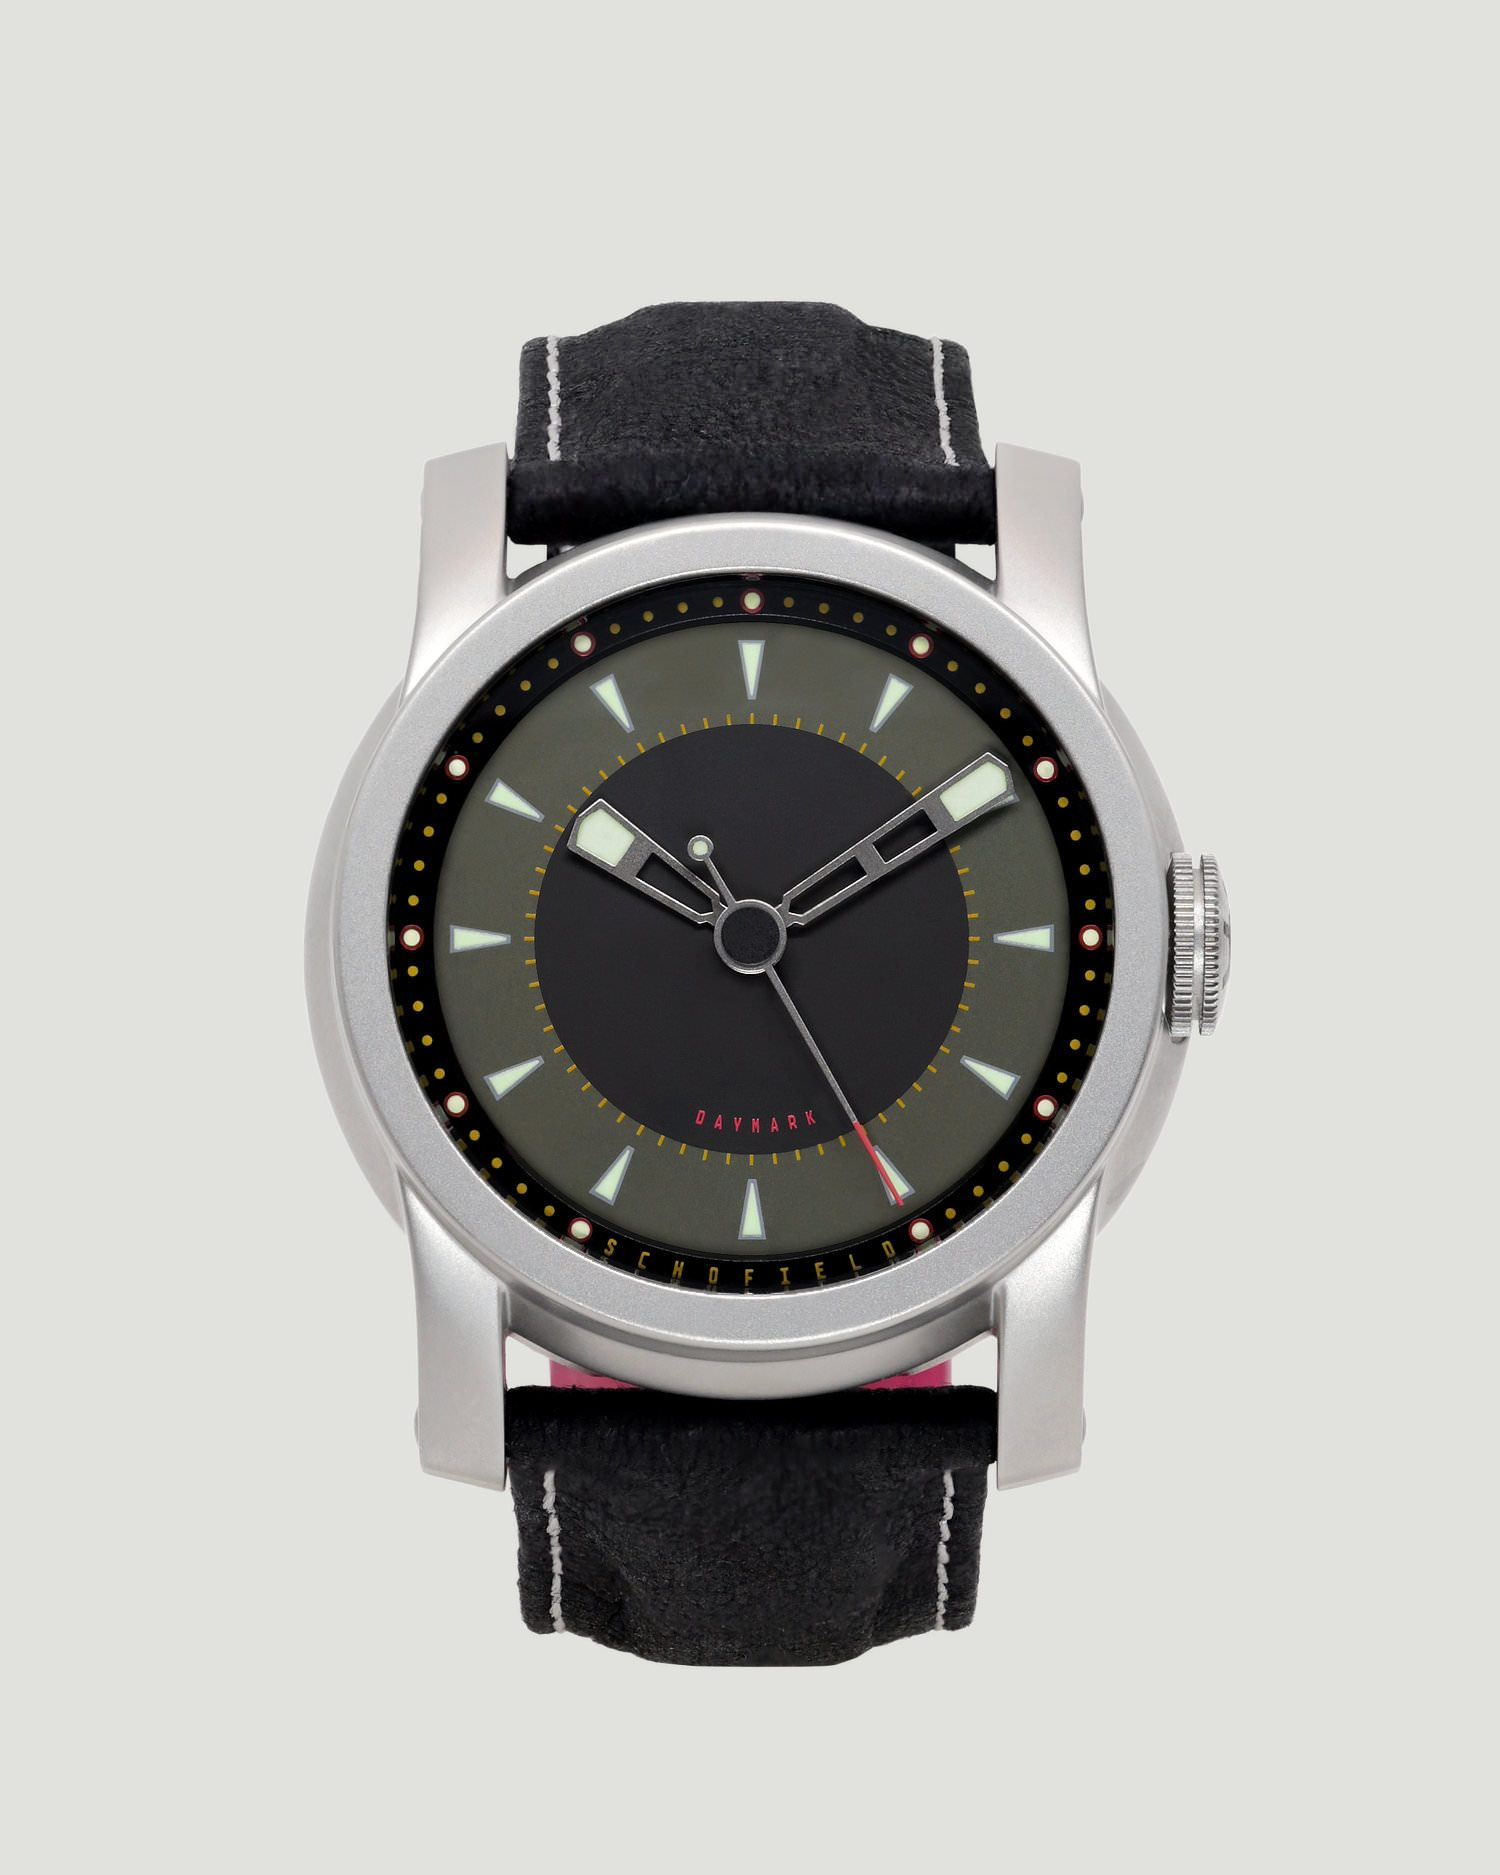 The Daymark English watches